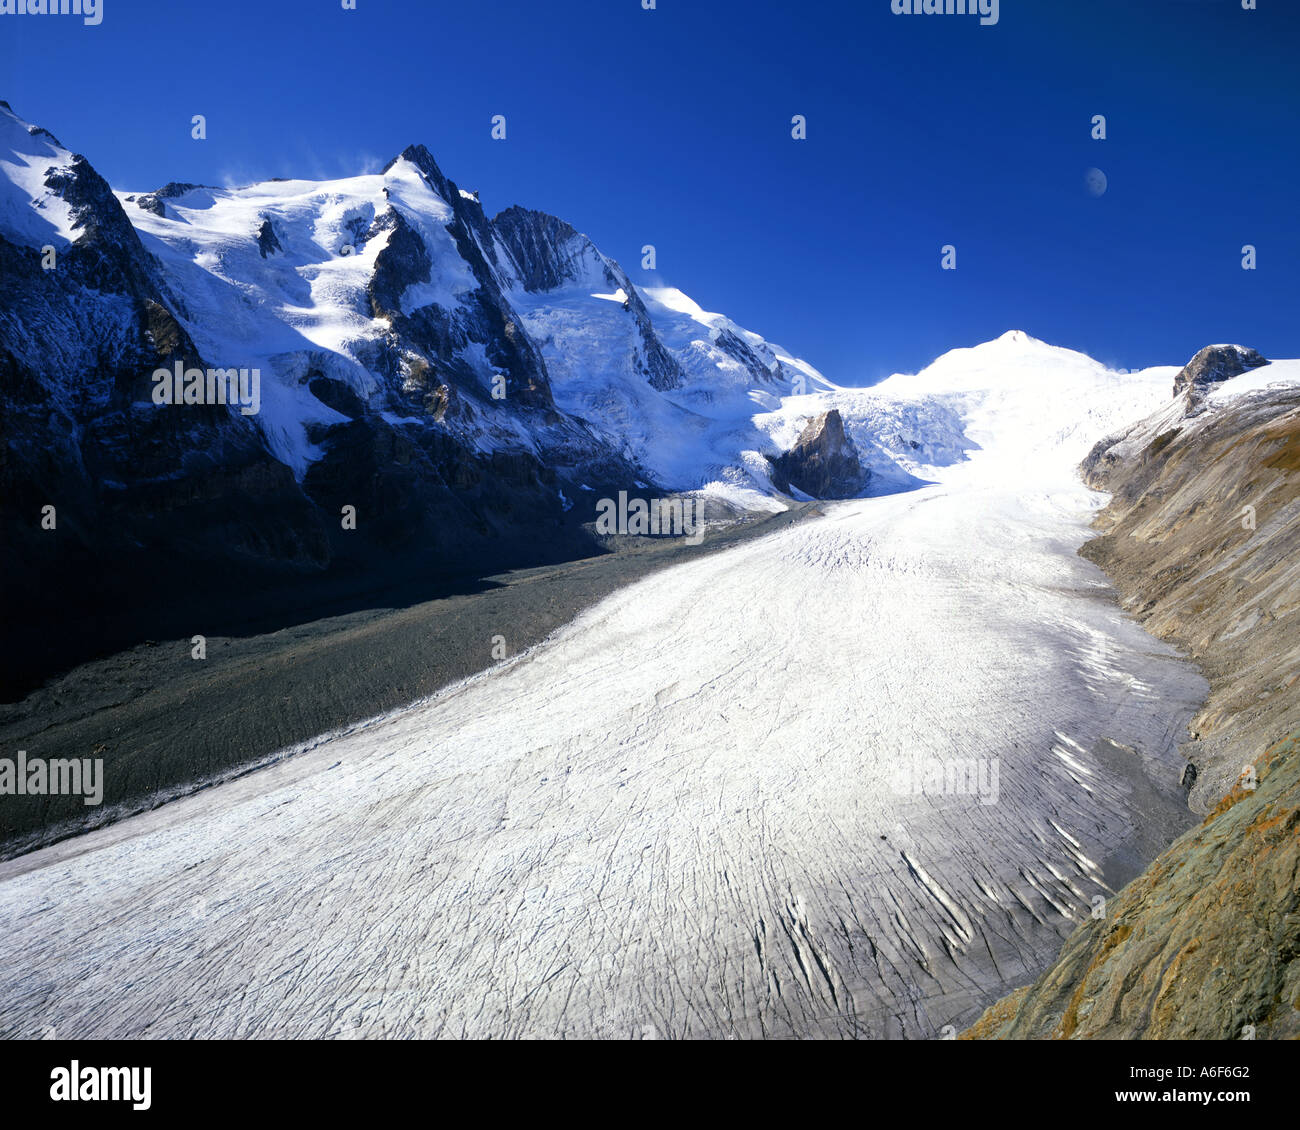 AT - CARINTHIA: The Grossglockner Glacier and Pasterze Glacier - Stock Image